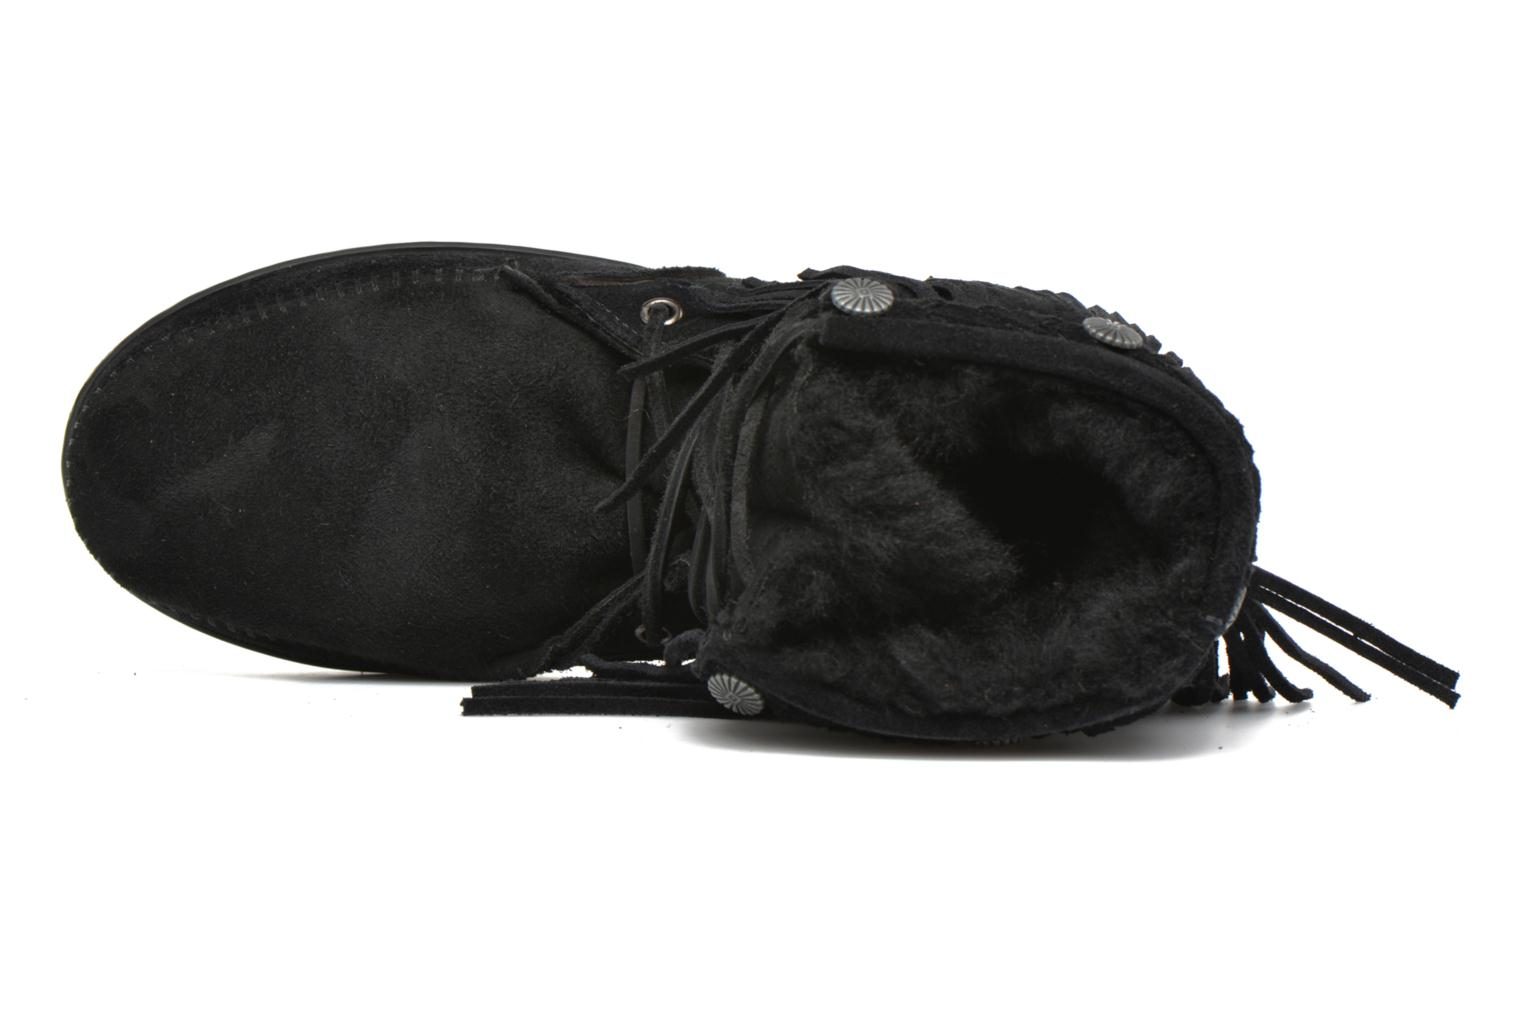 SHEEPSKIN TRAMPER BLACK SHEEPSKIN